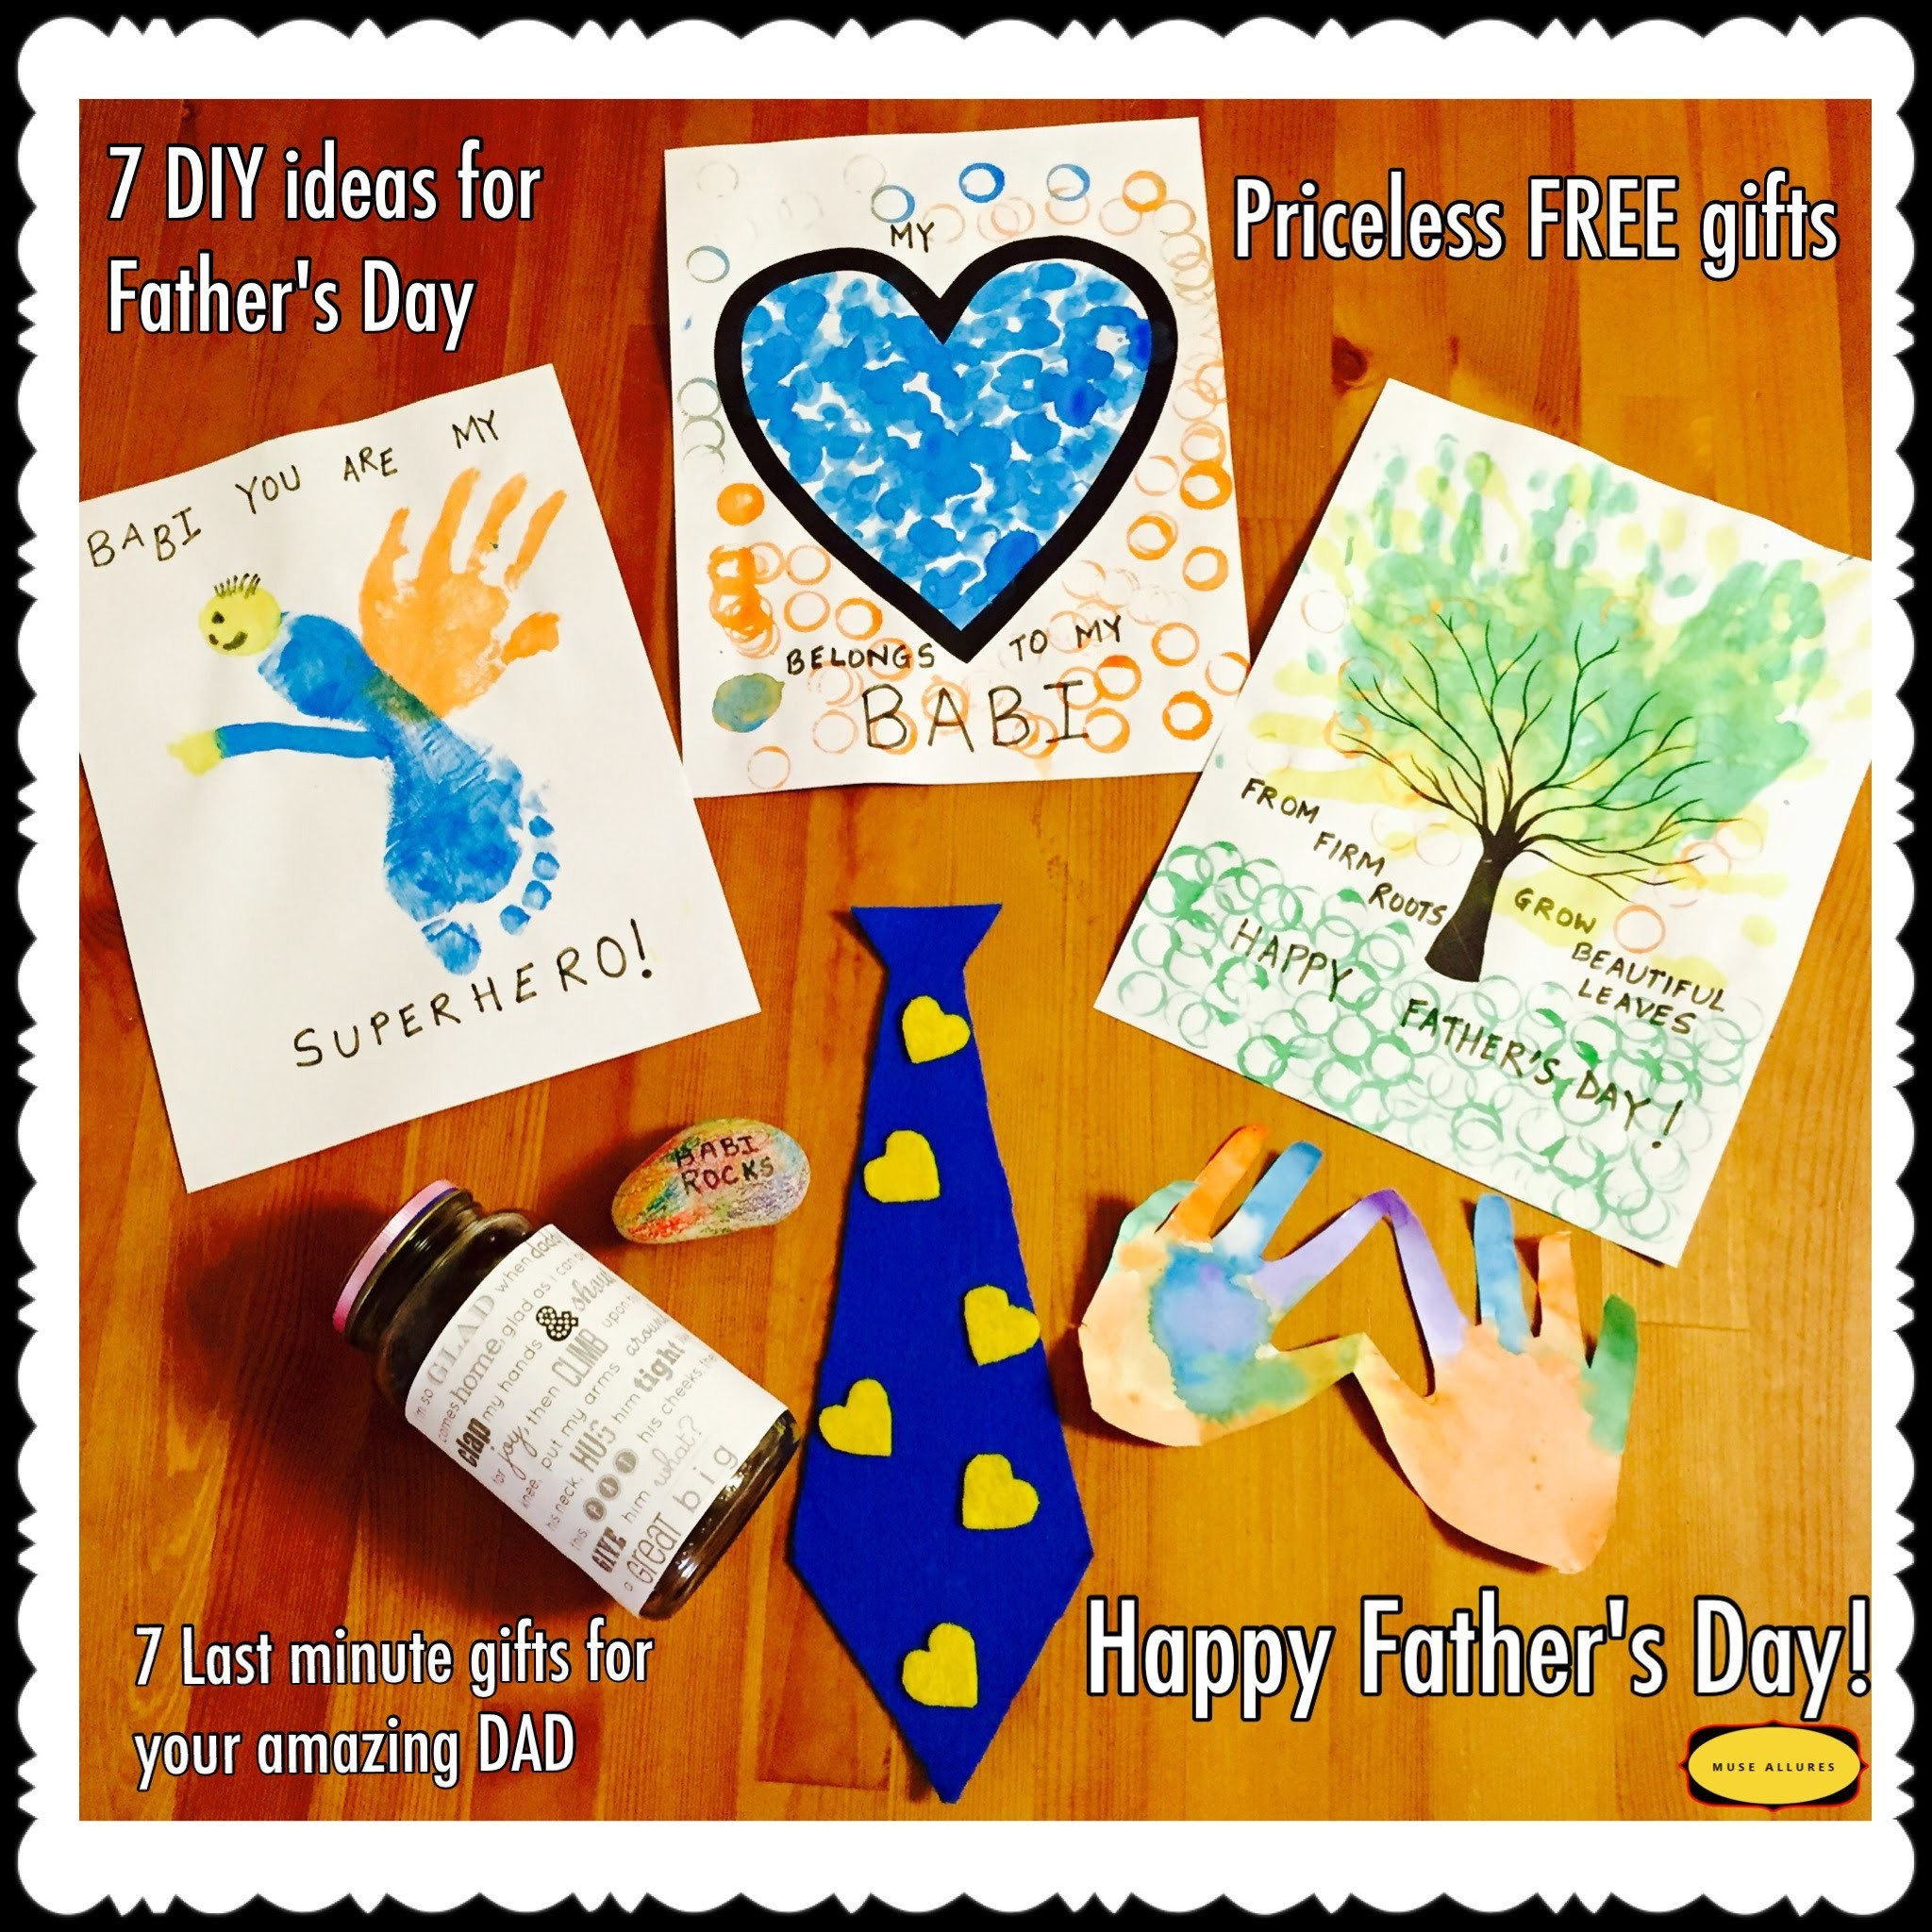 How to: 7 DIY Father's Day Ideas that are Handmade Easy Quick and under $1 Tutorial